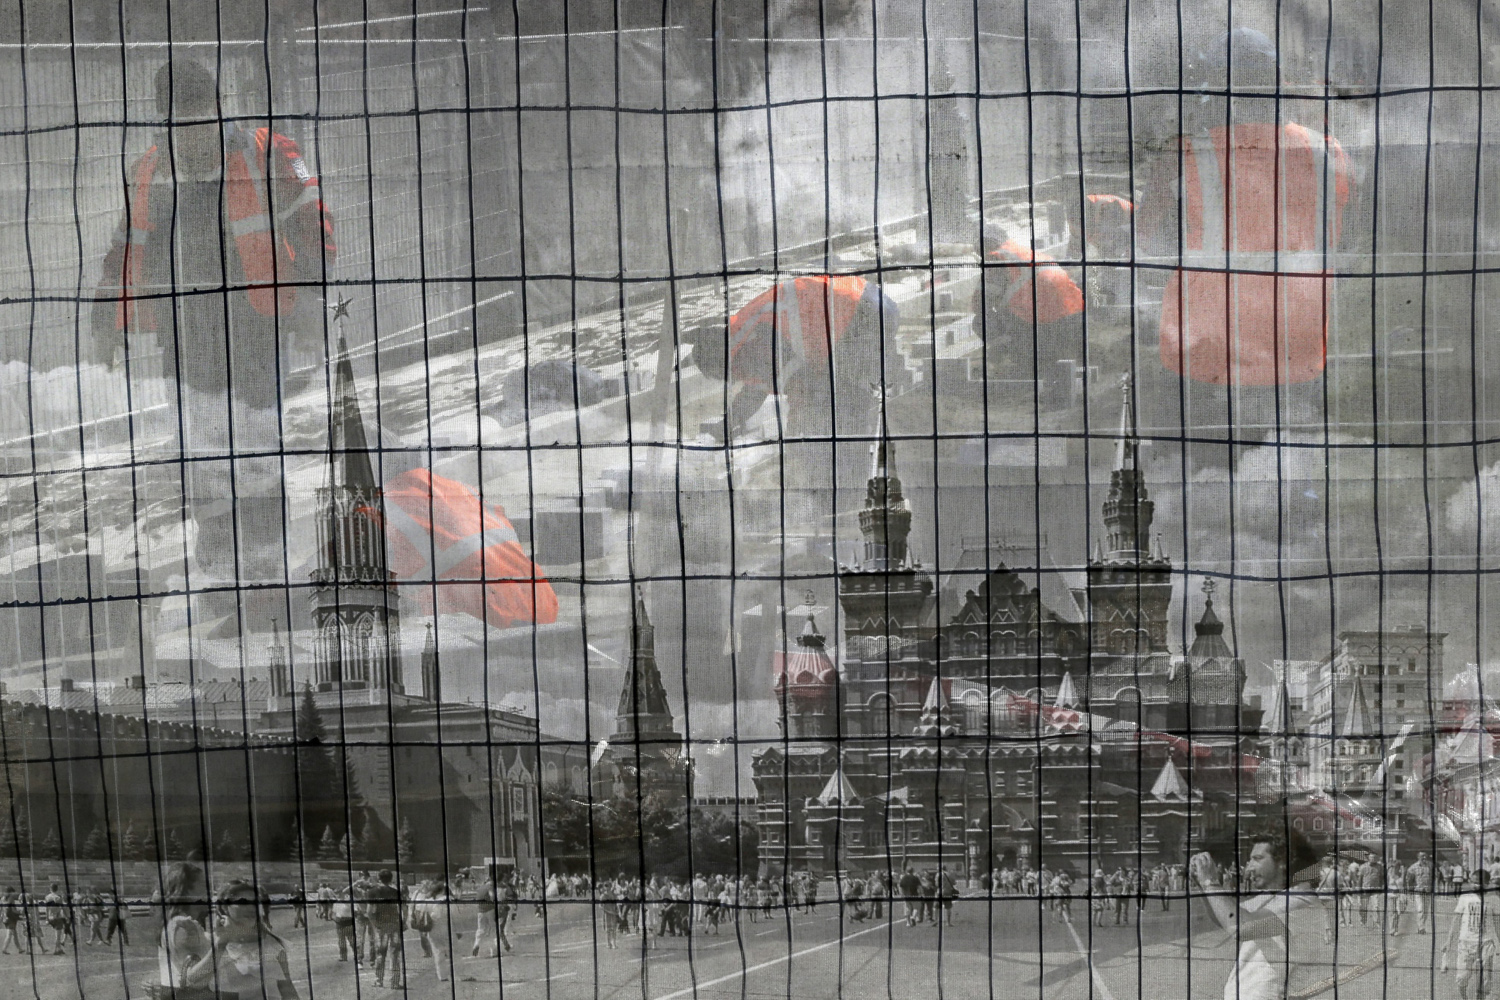 Apr. 10, 2014. Municipal workers from Asian republics are seen through a fence with pictures of the Red Square during their work on landscaping around the Kremlin in Moscow, Russia.